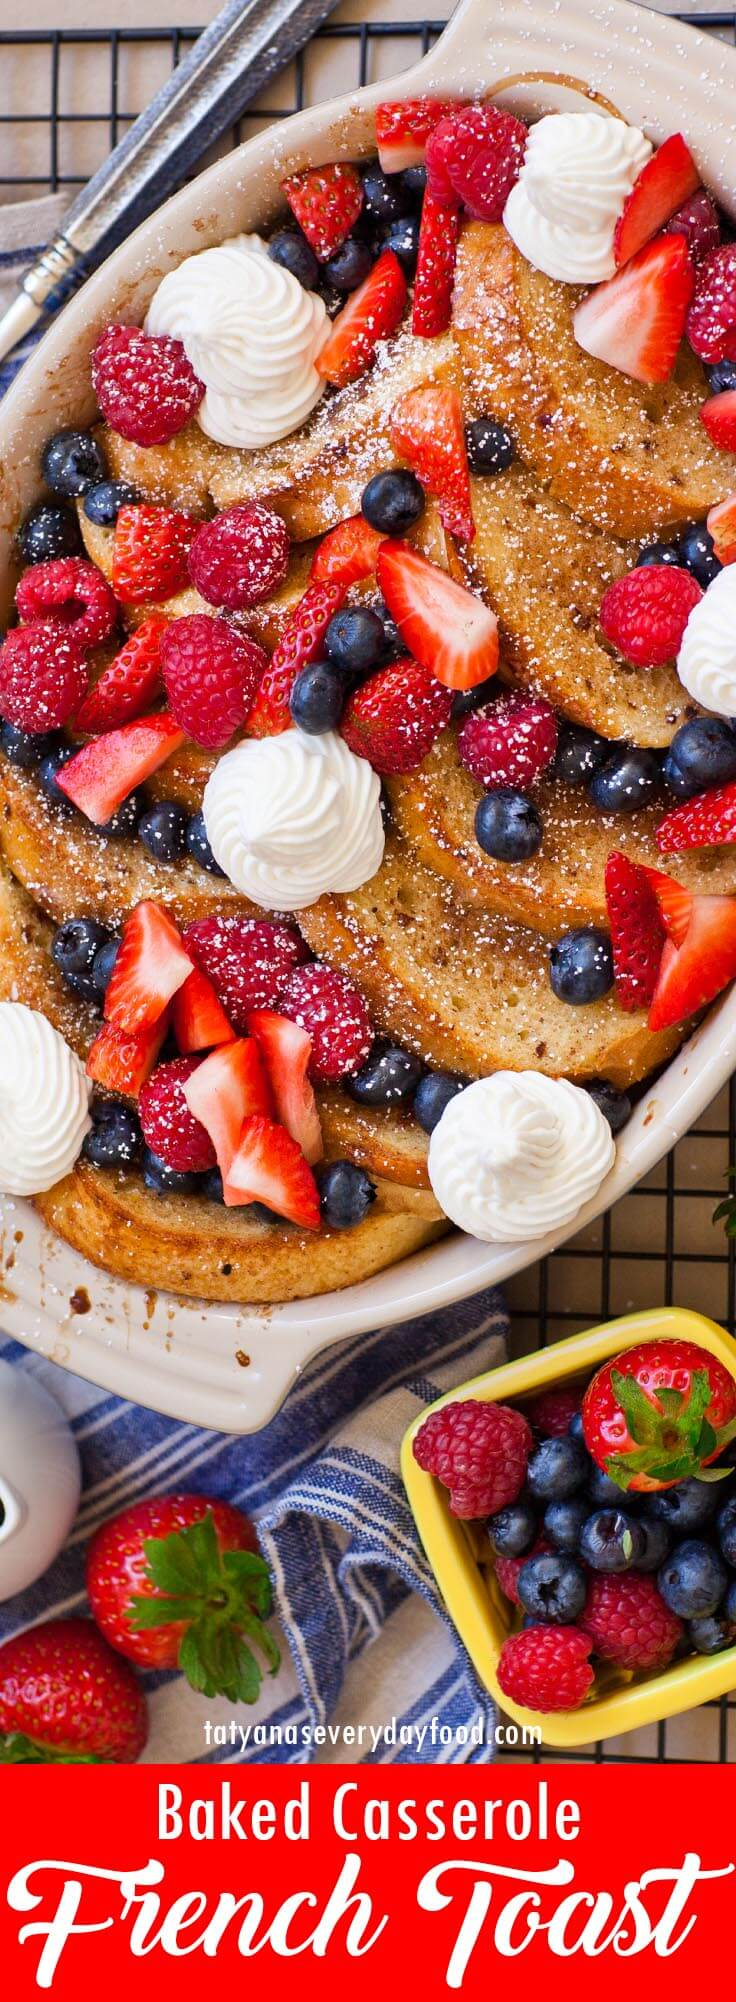 Berry Baked French Toast video recipe